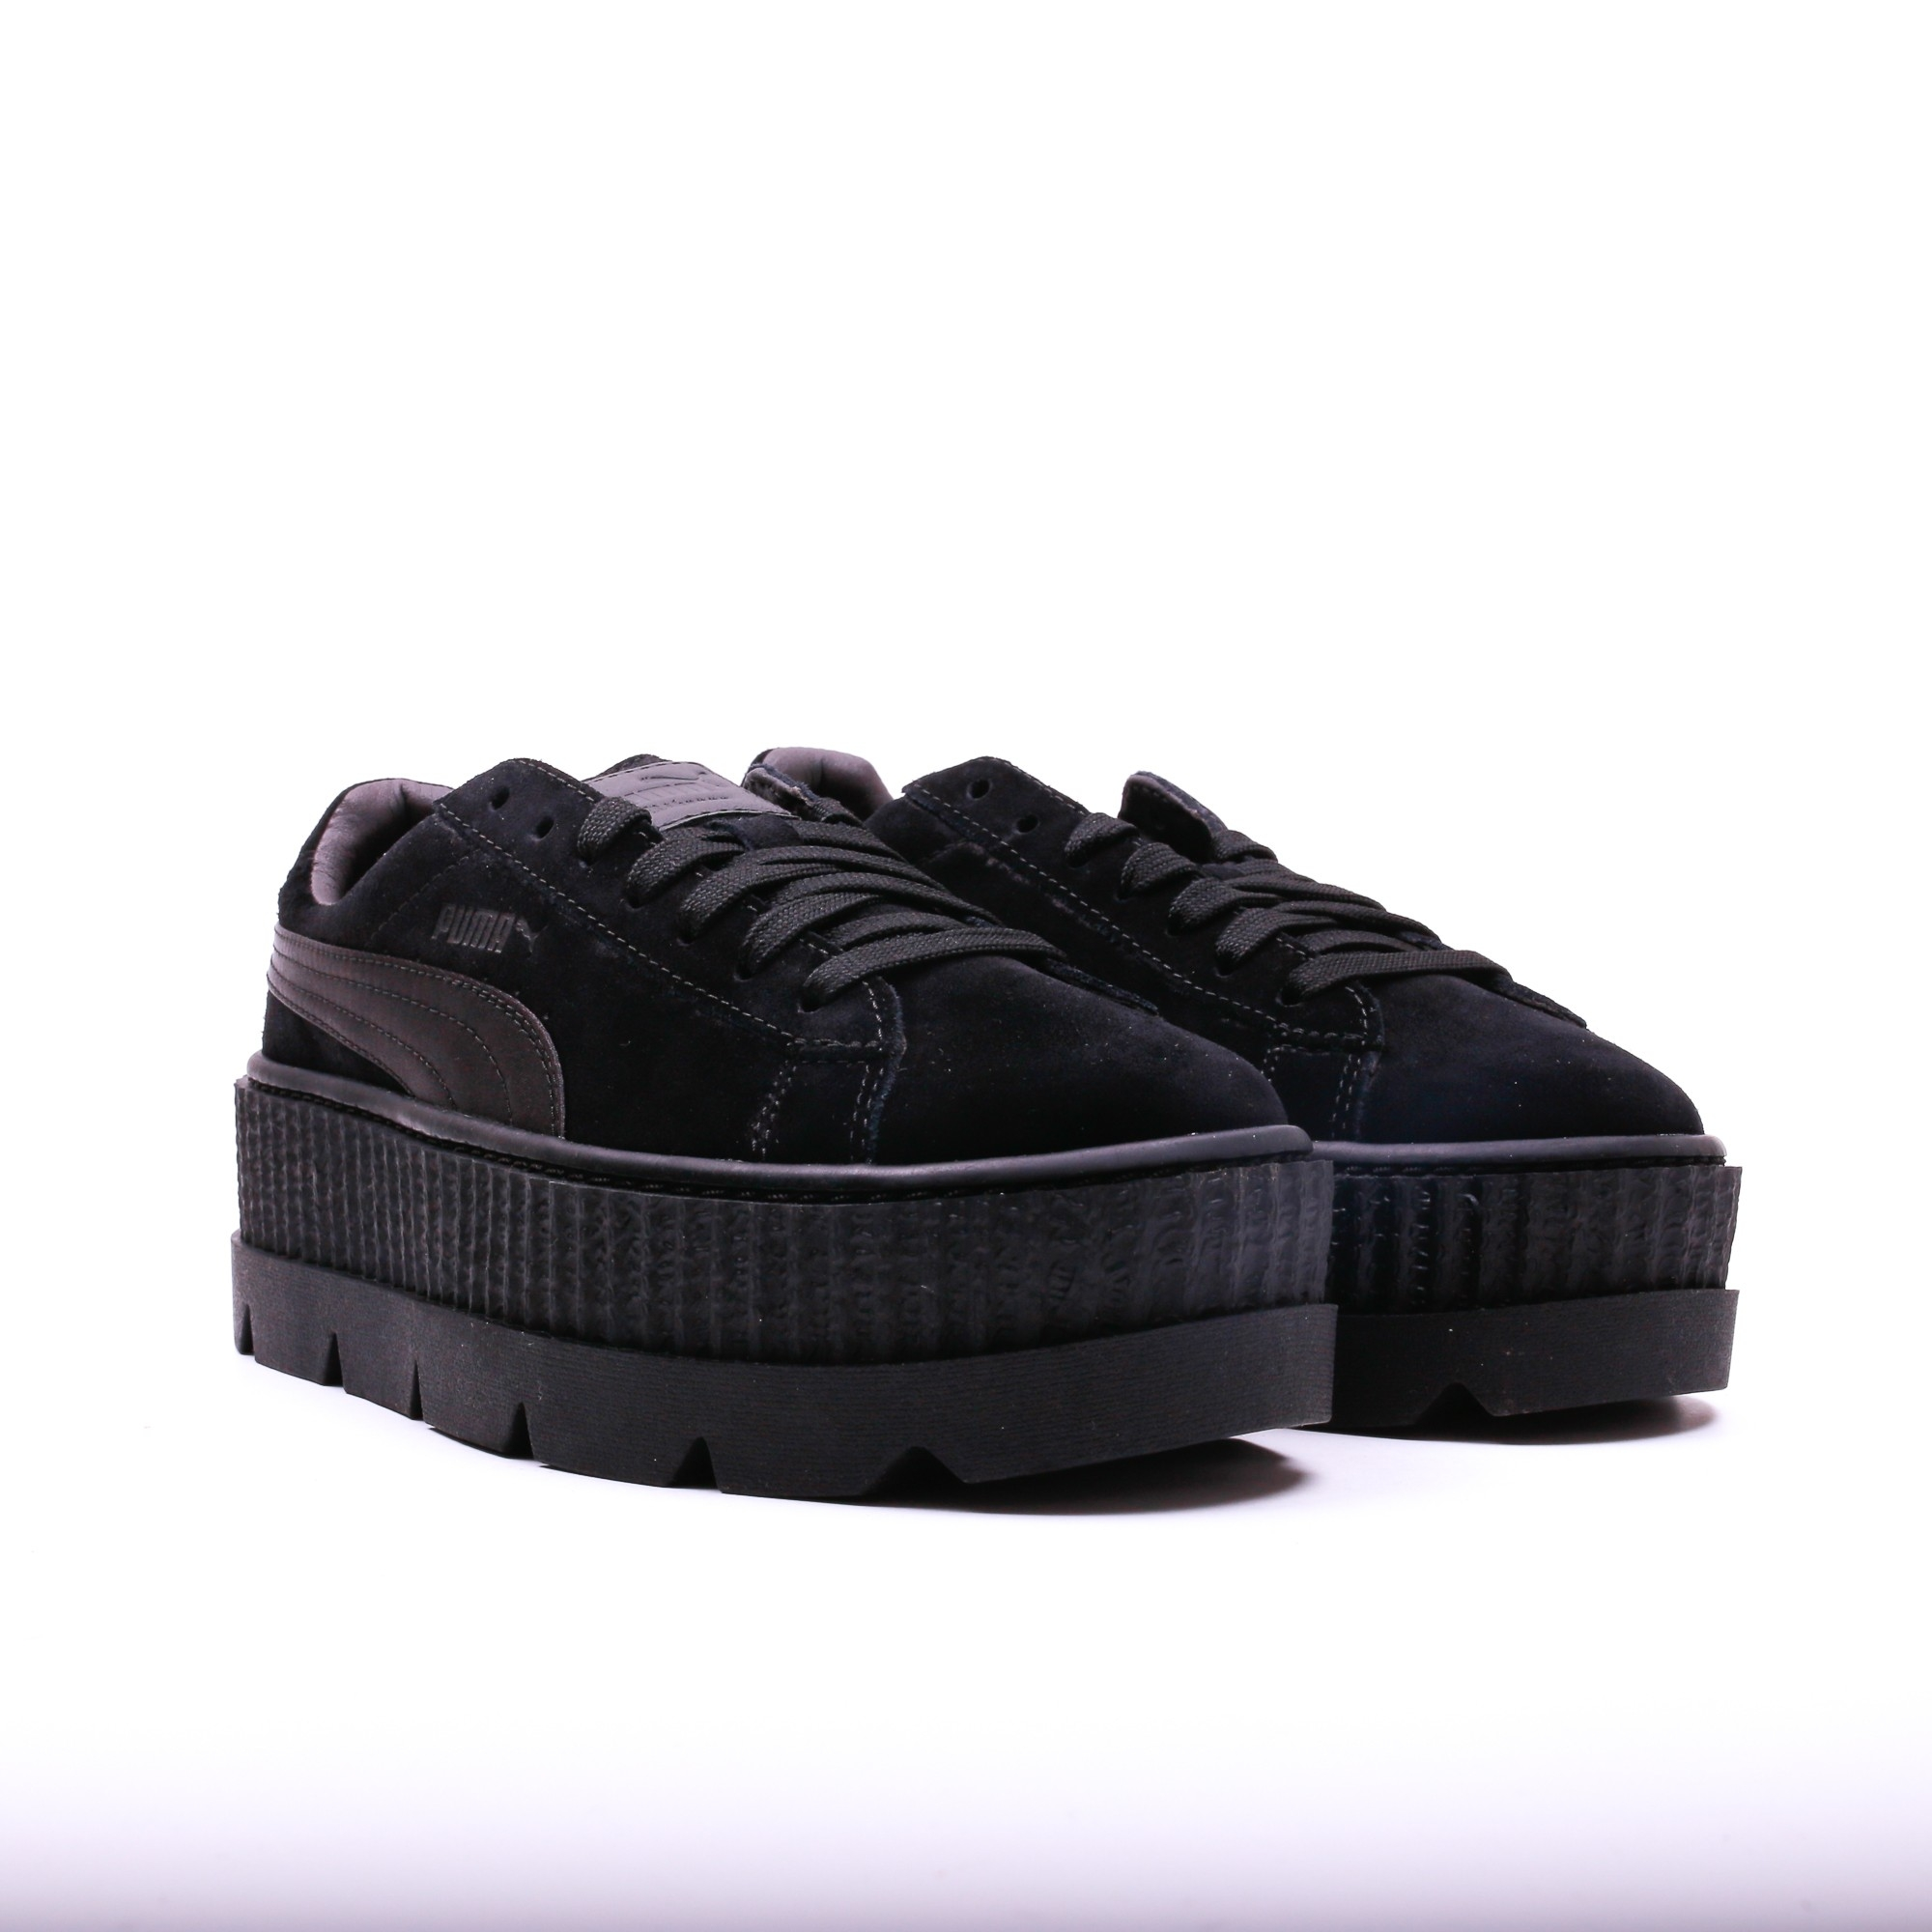 puma x fenty cleated creeper suede black slash store. Black Bedroom Furniture Sets. Home Design Ideas